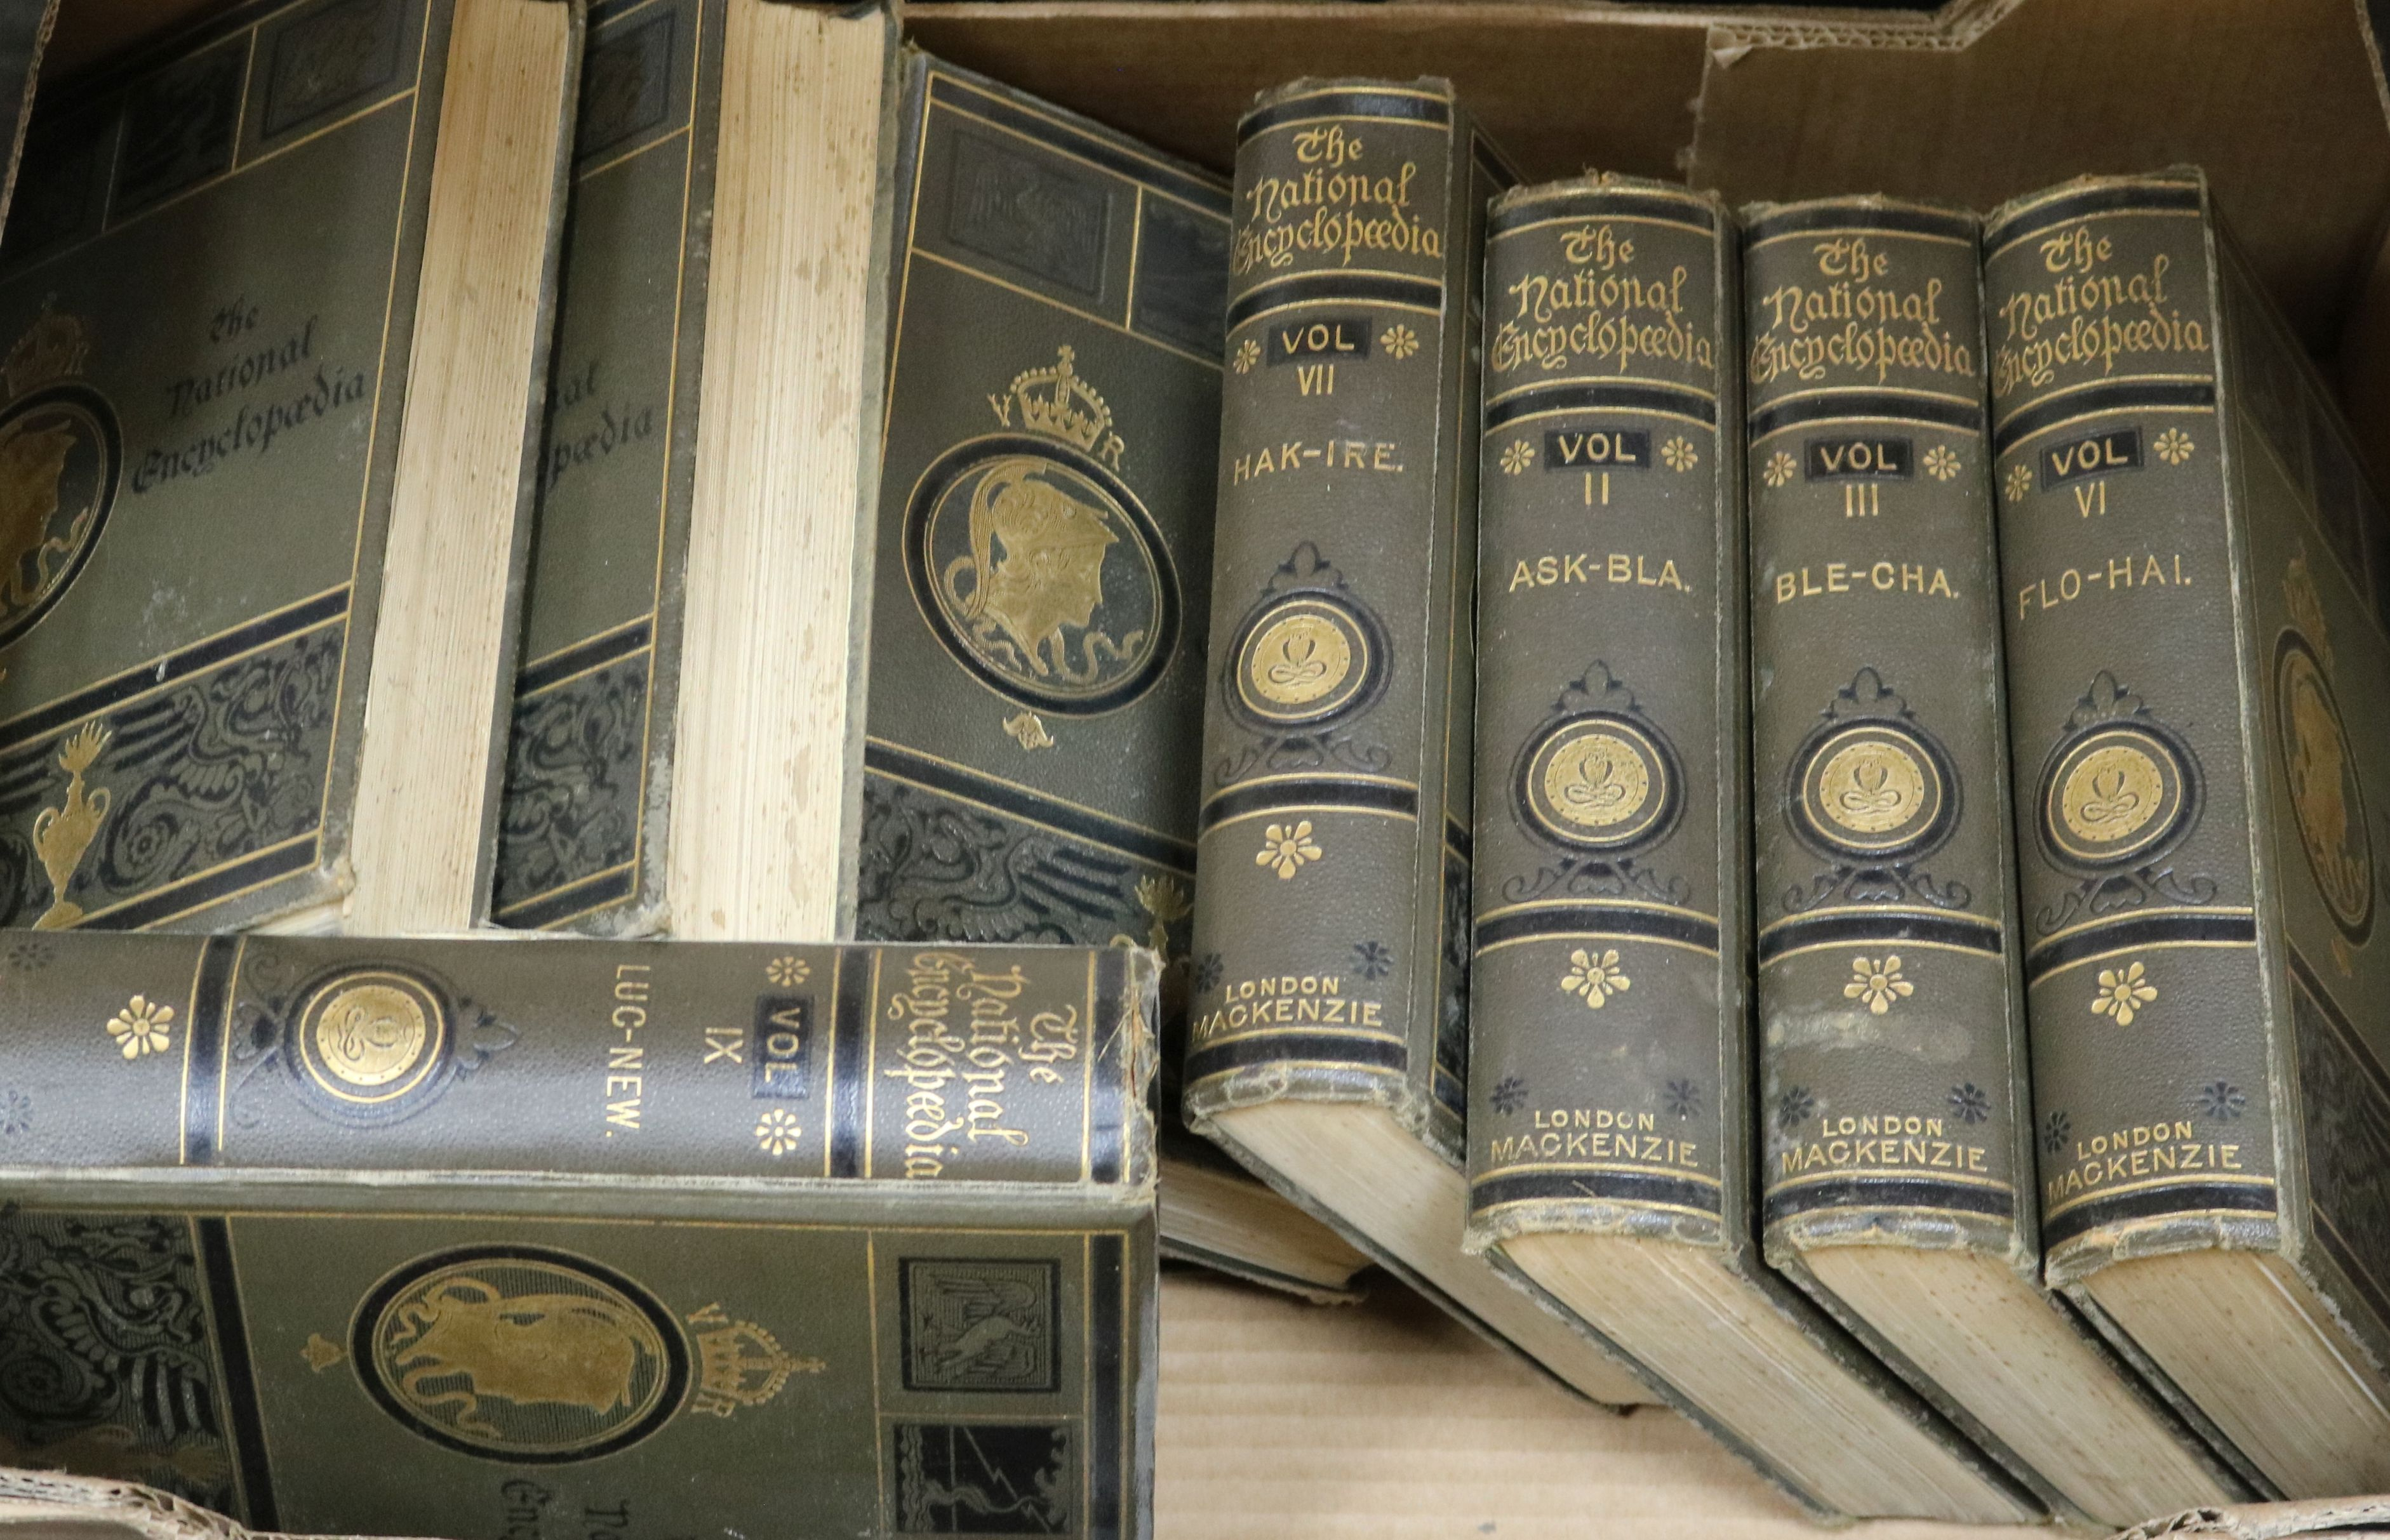 Lot 139 - A quantity of Beautiful Britain, magazines and The National Encyclopedia